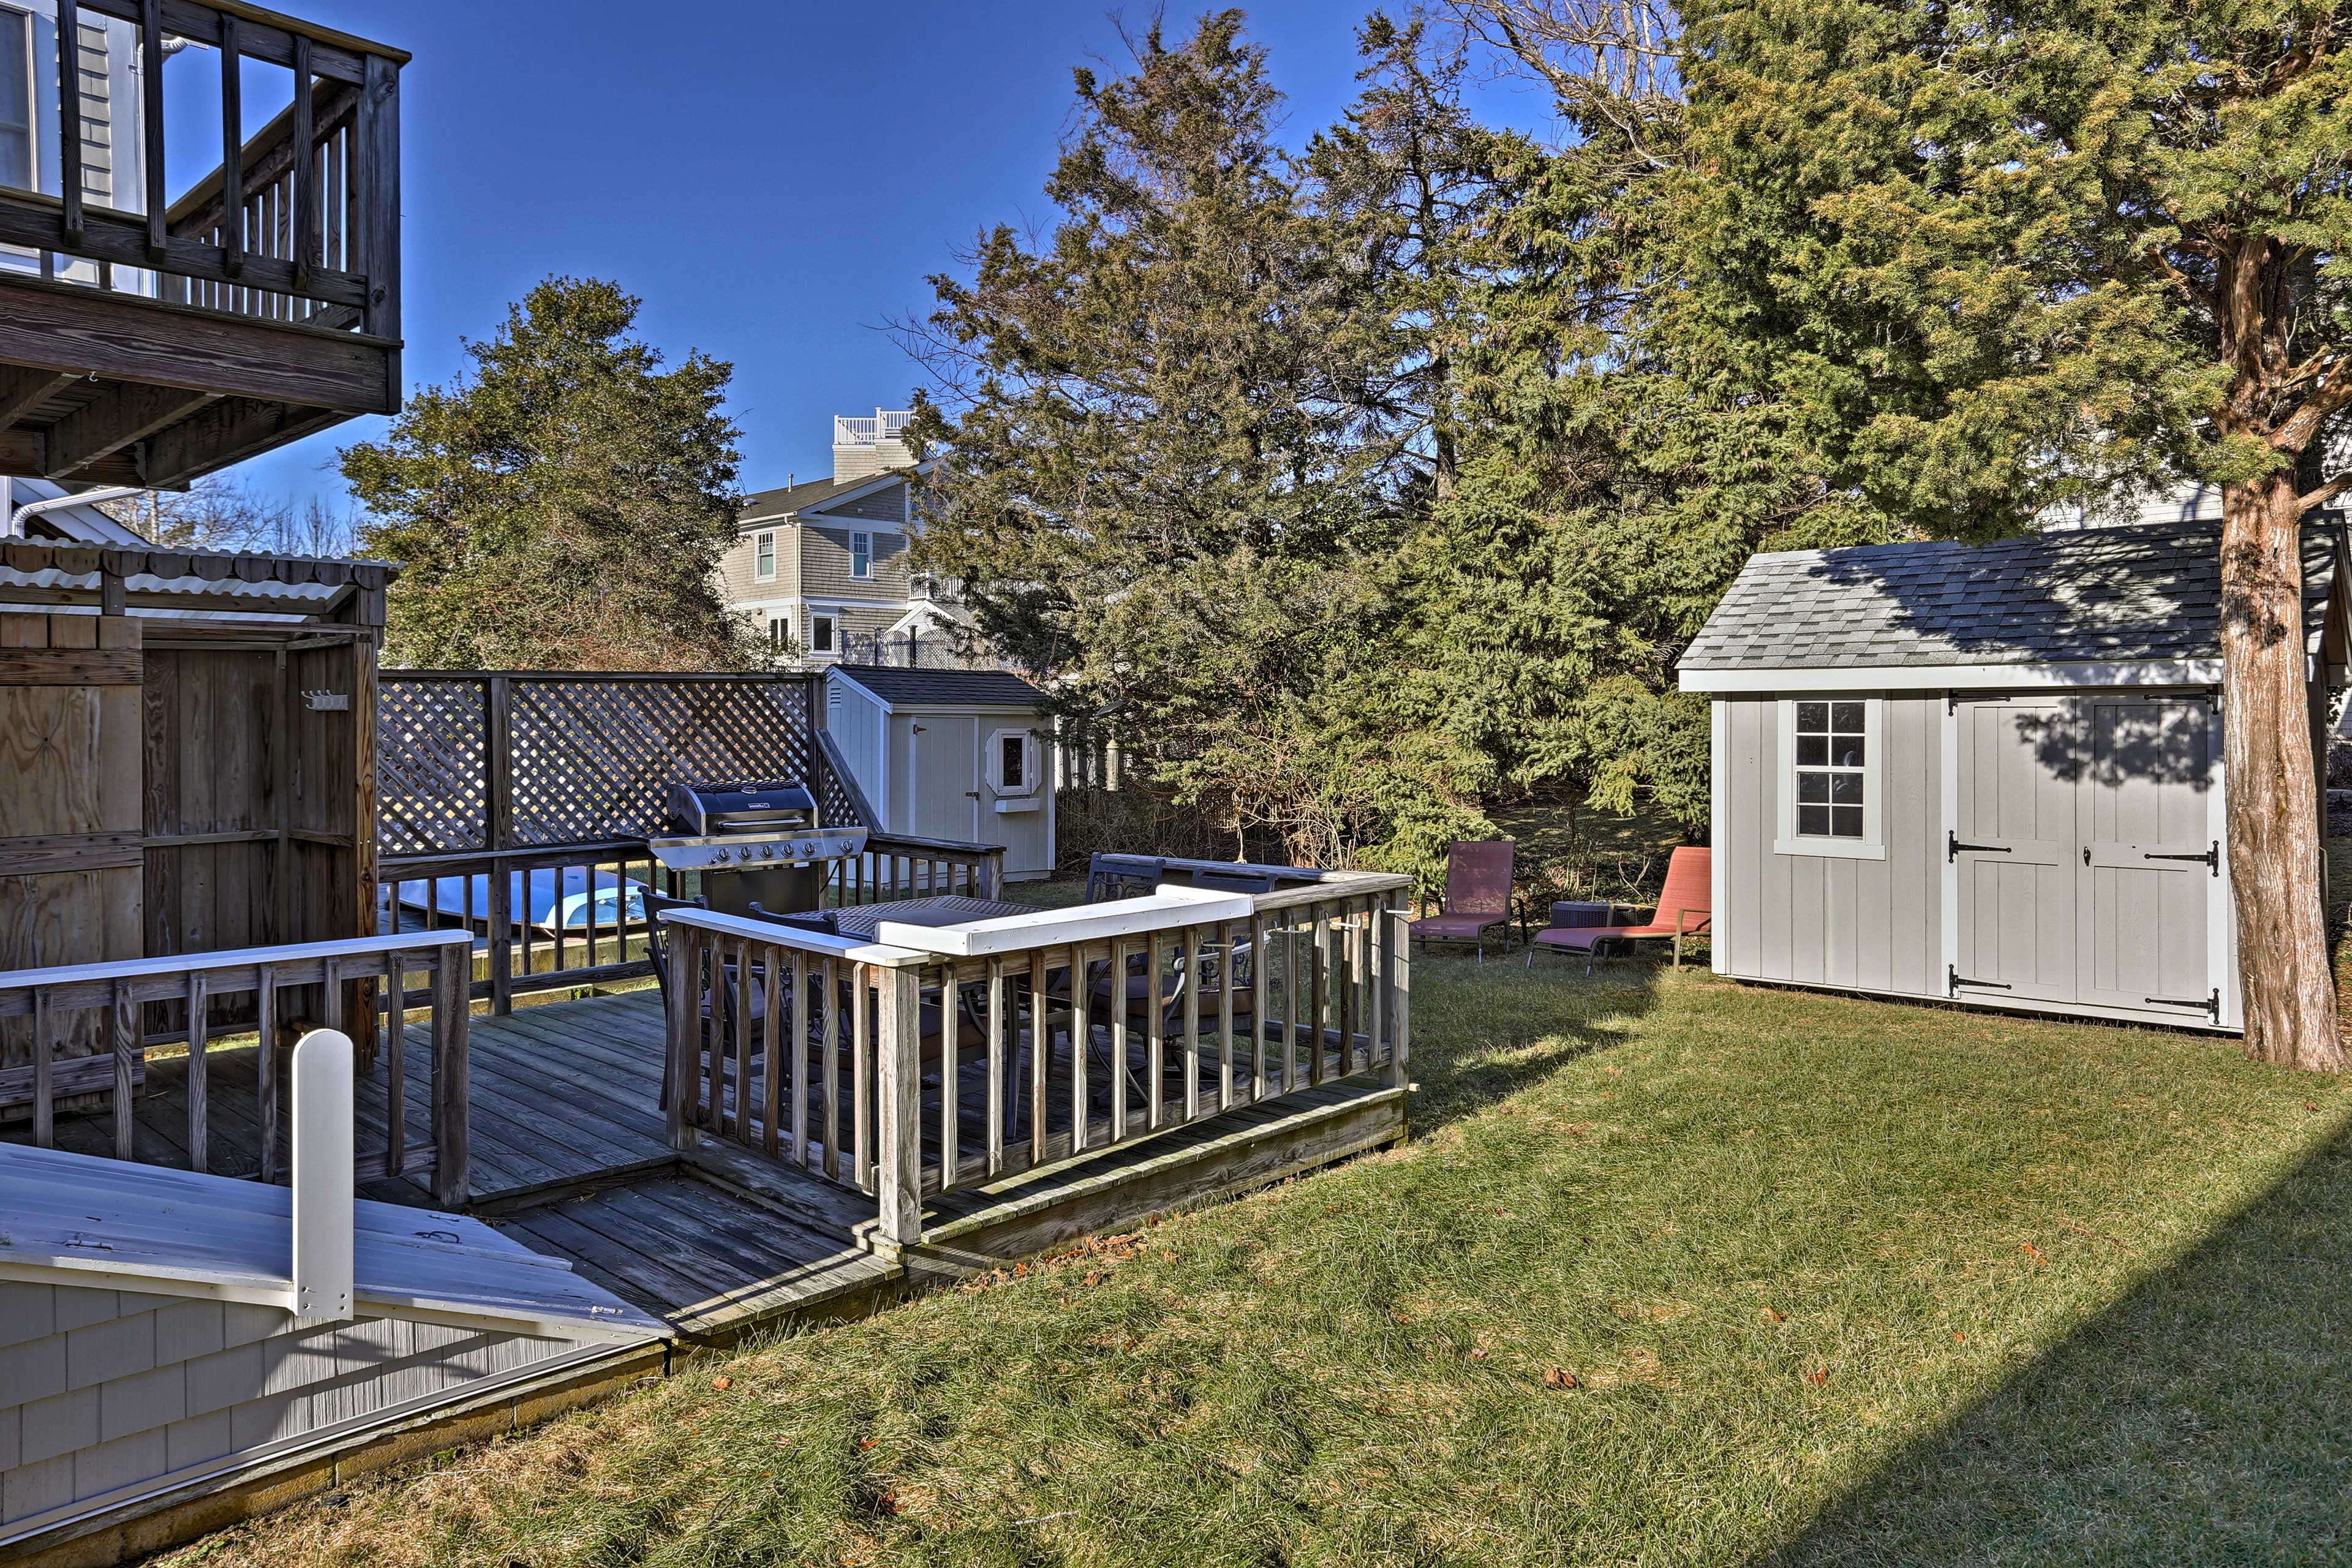 You'll have plenty of grassy backyard space for the kiddos to romp around in.